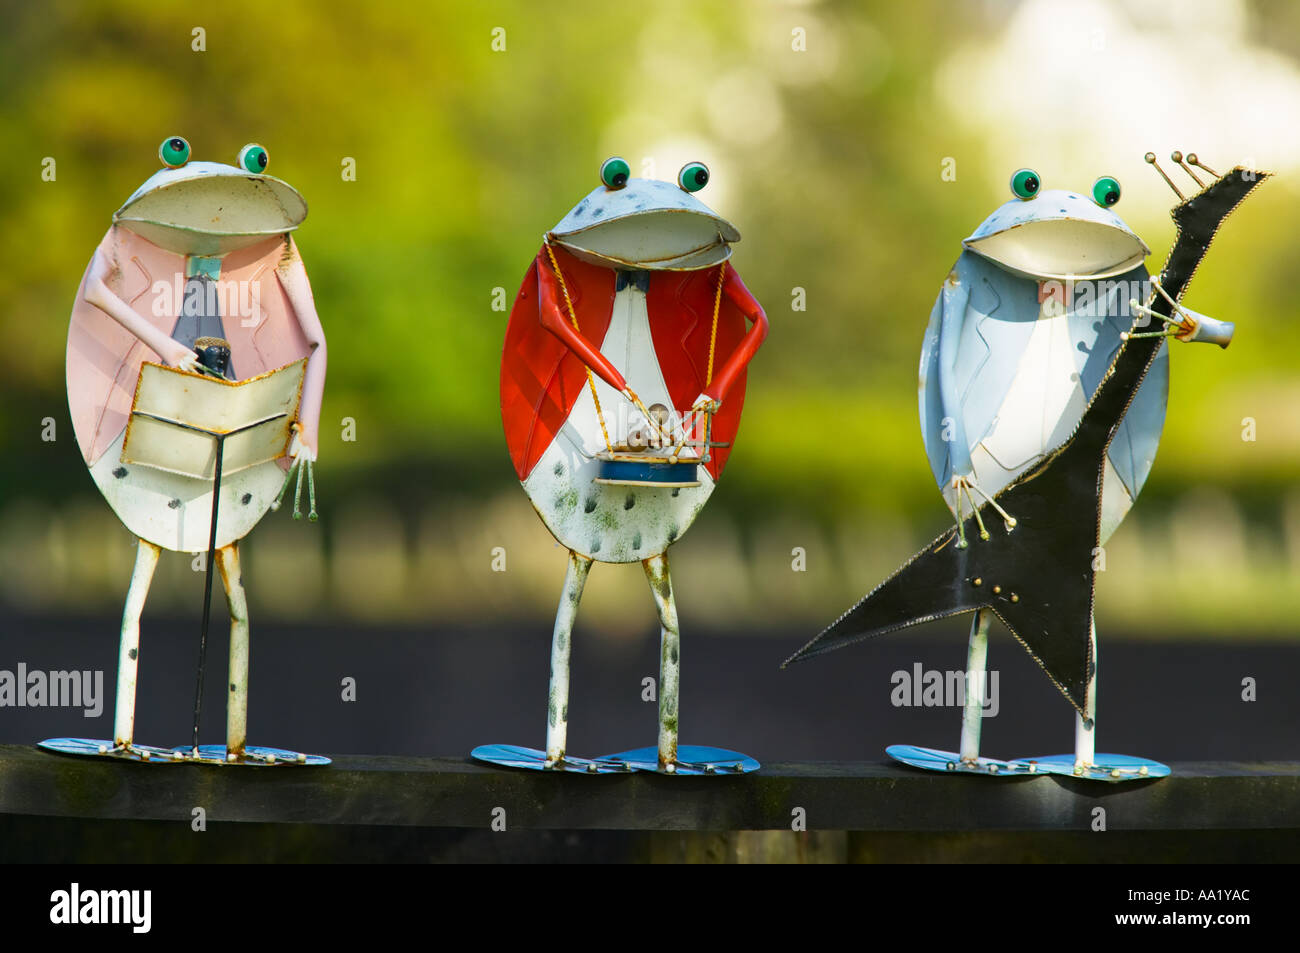 Frogs playing musical instruments - Stock Image